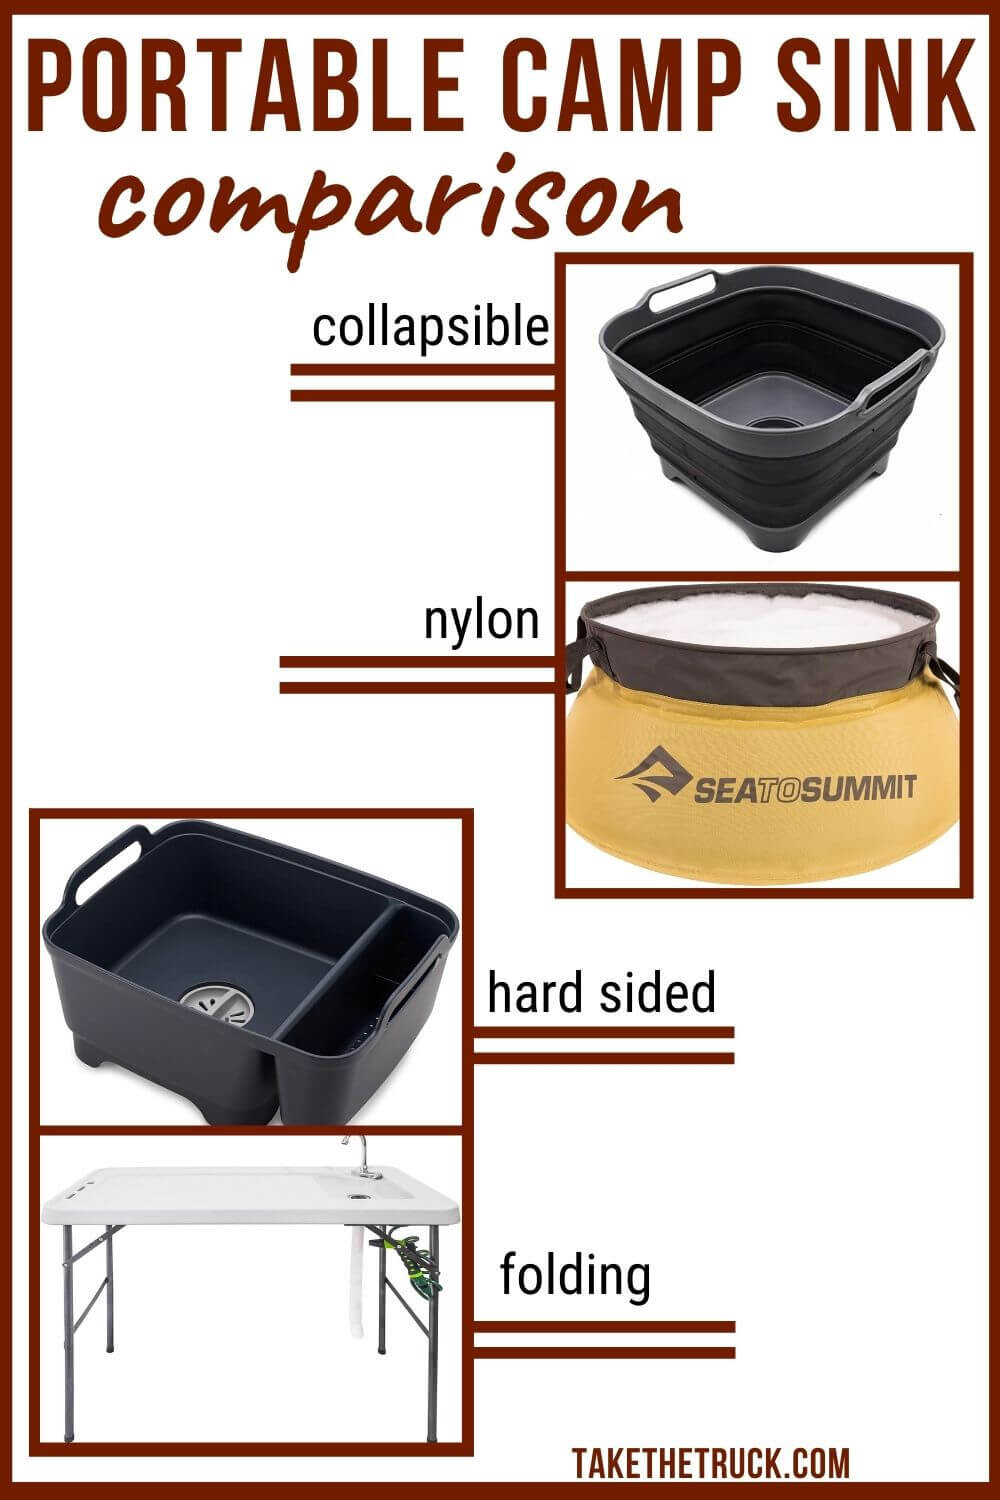 Looking for some good portable camping sink ideas? This post will help, whether you need a backpacking sink, collapsible camping sink, truck bed camping sink, or car, minivan, or suv camping sink!